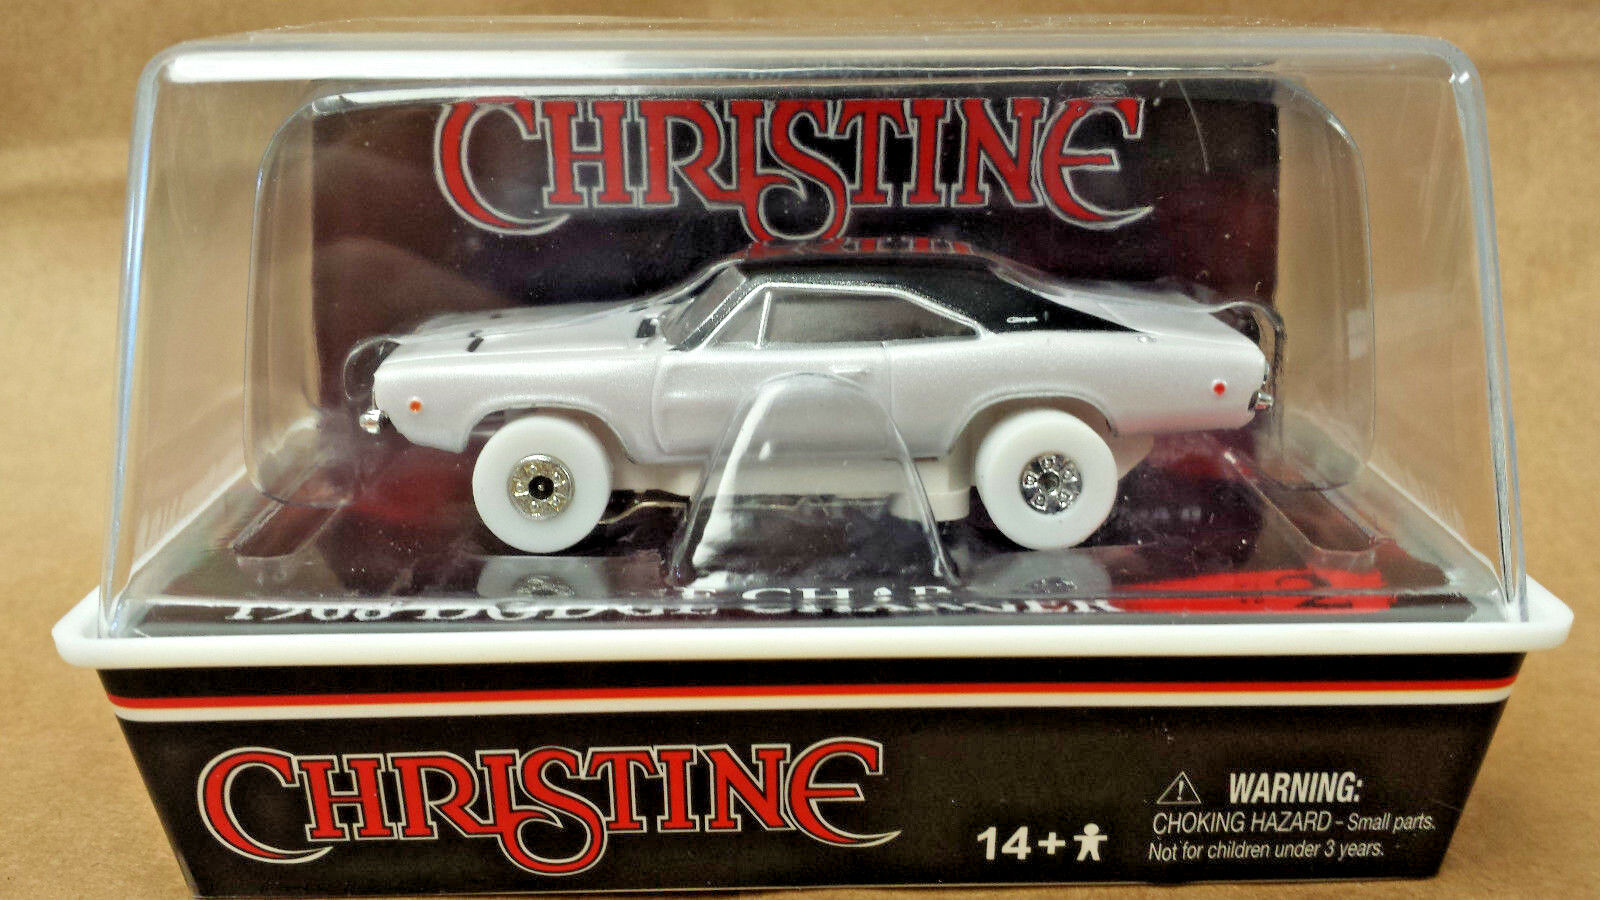 1968 Dodge Charger  Christine  iWheels   Chase  Auto World Ultra-G  NEW